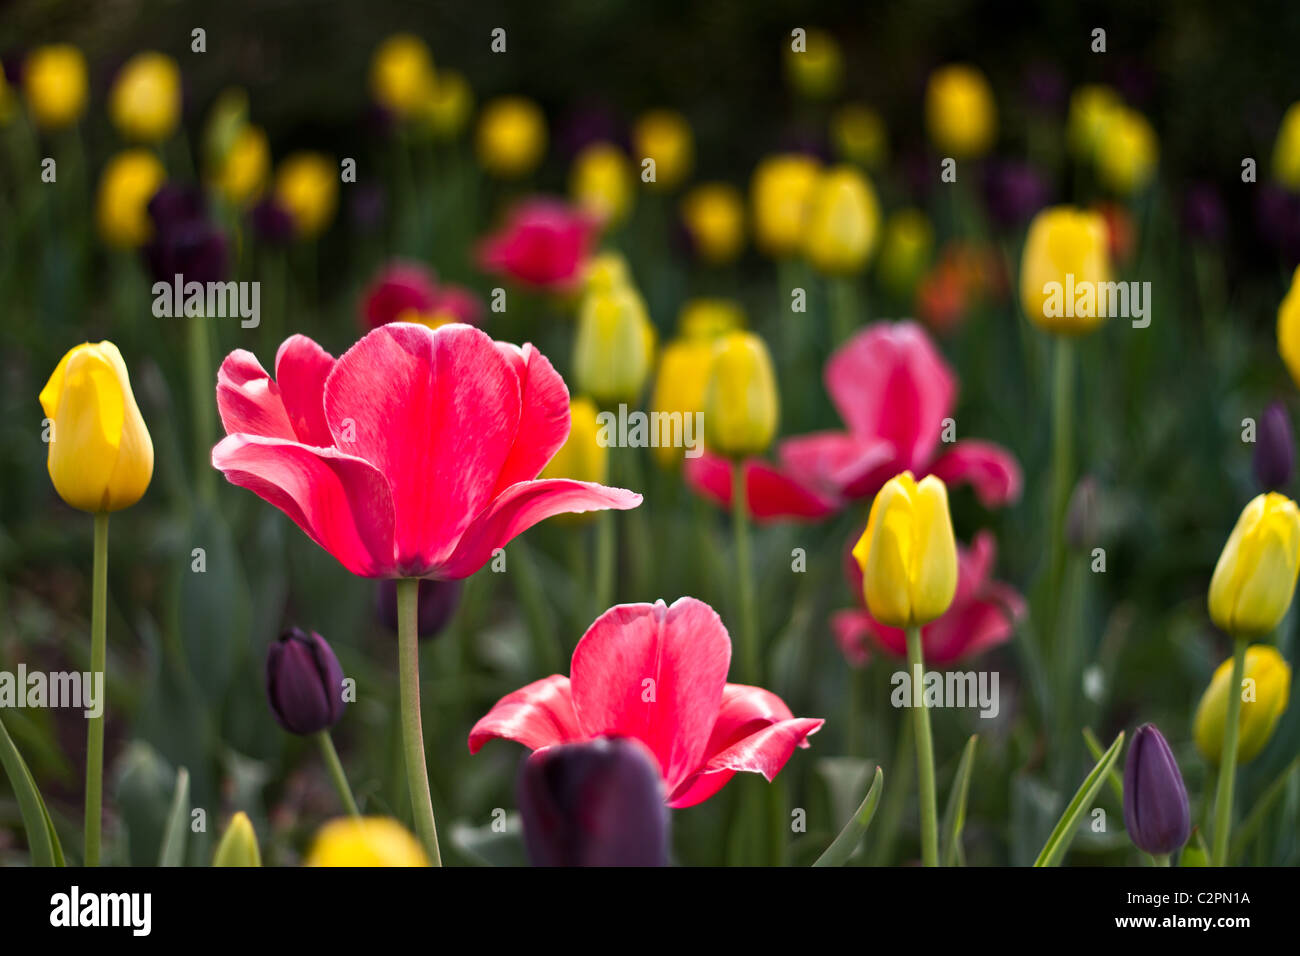 Tulips (tulipa) in spring - Stock Image